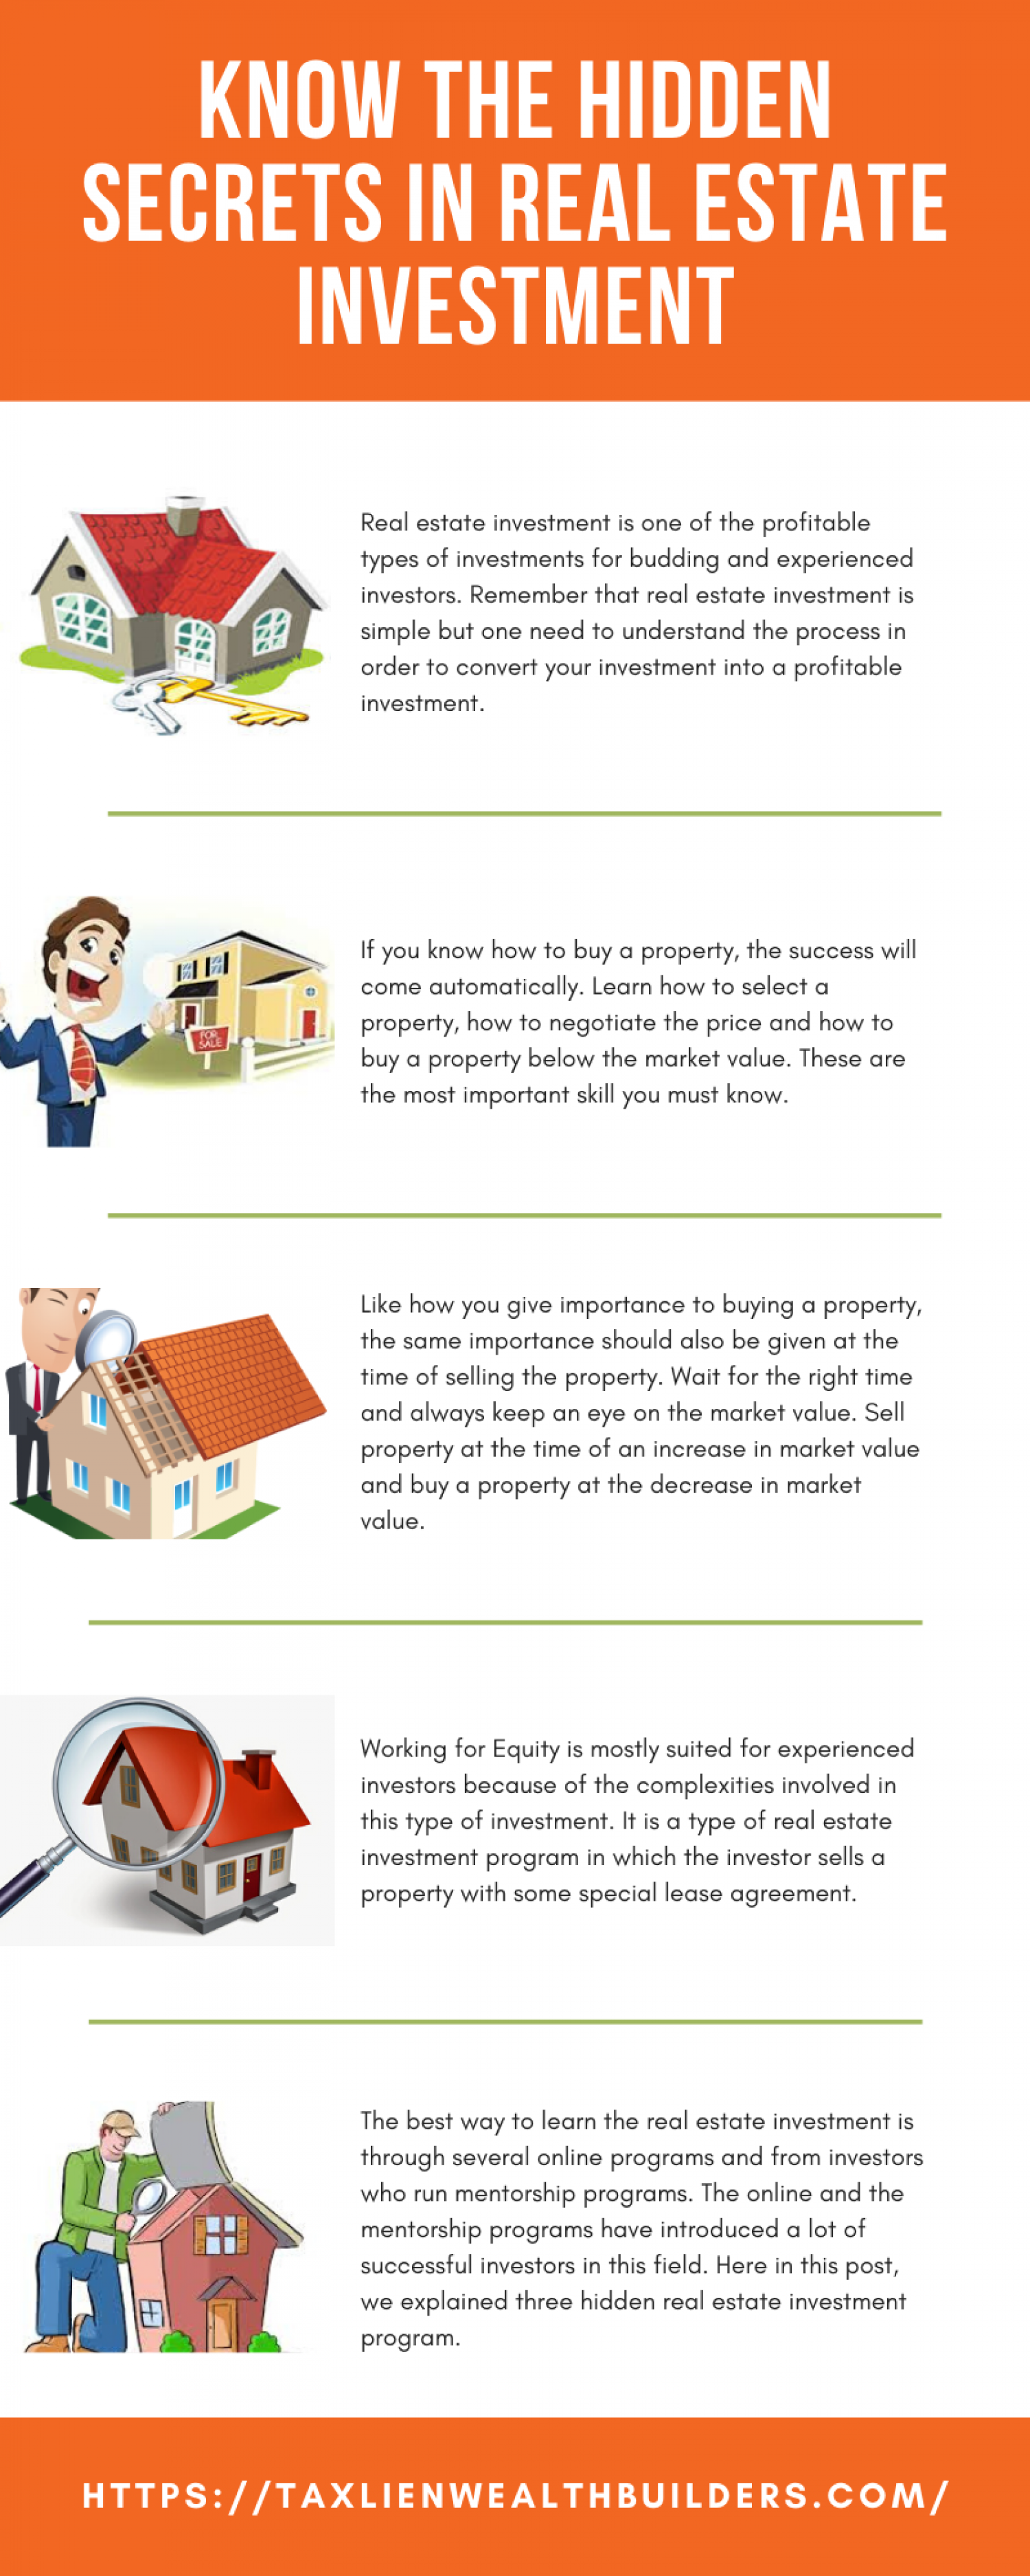 Know the Hidden Secrets in Real Estate Investment Infographic